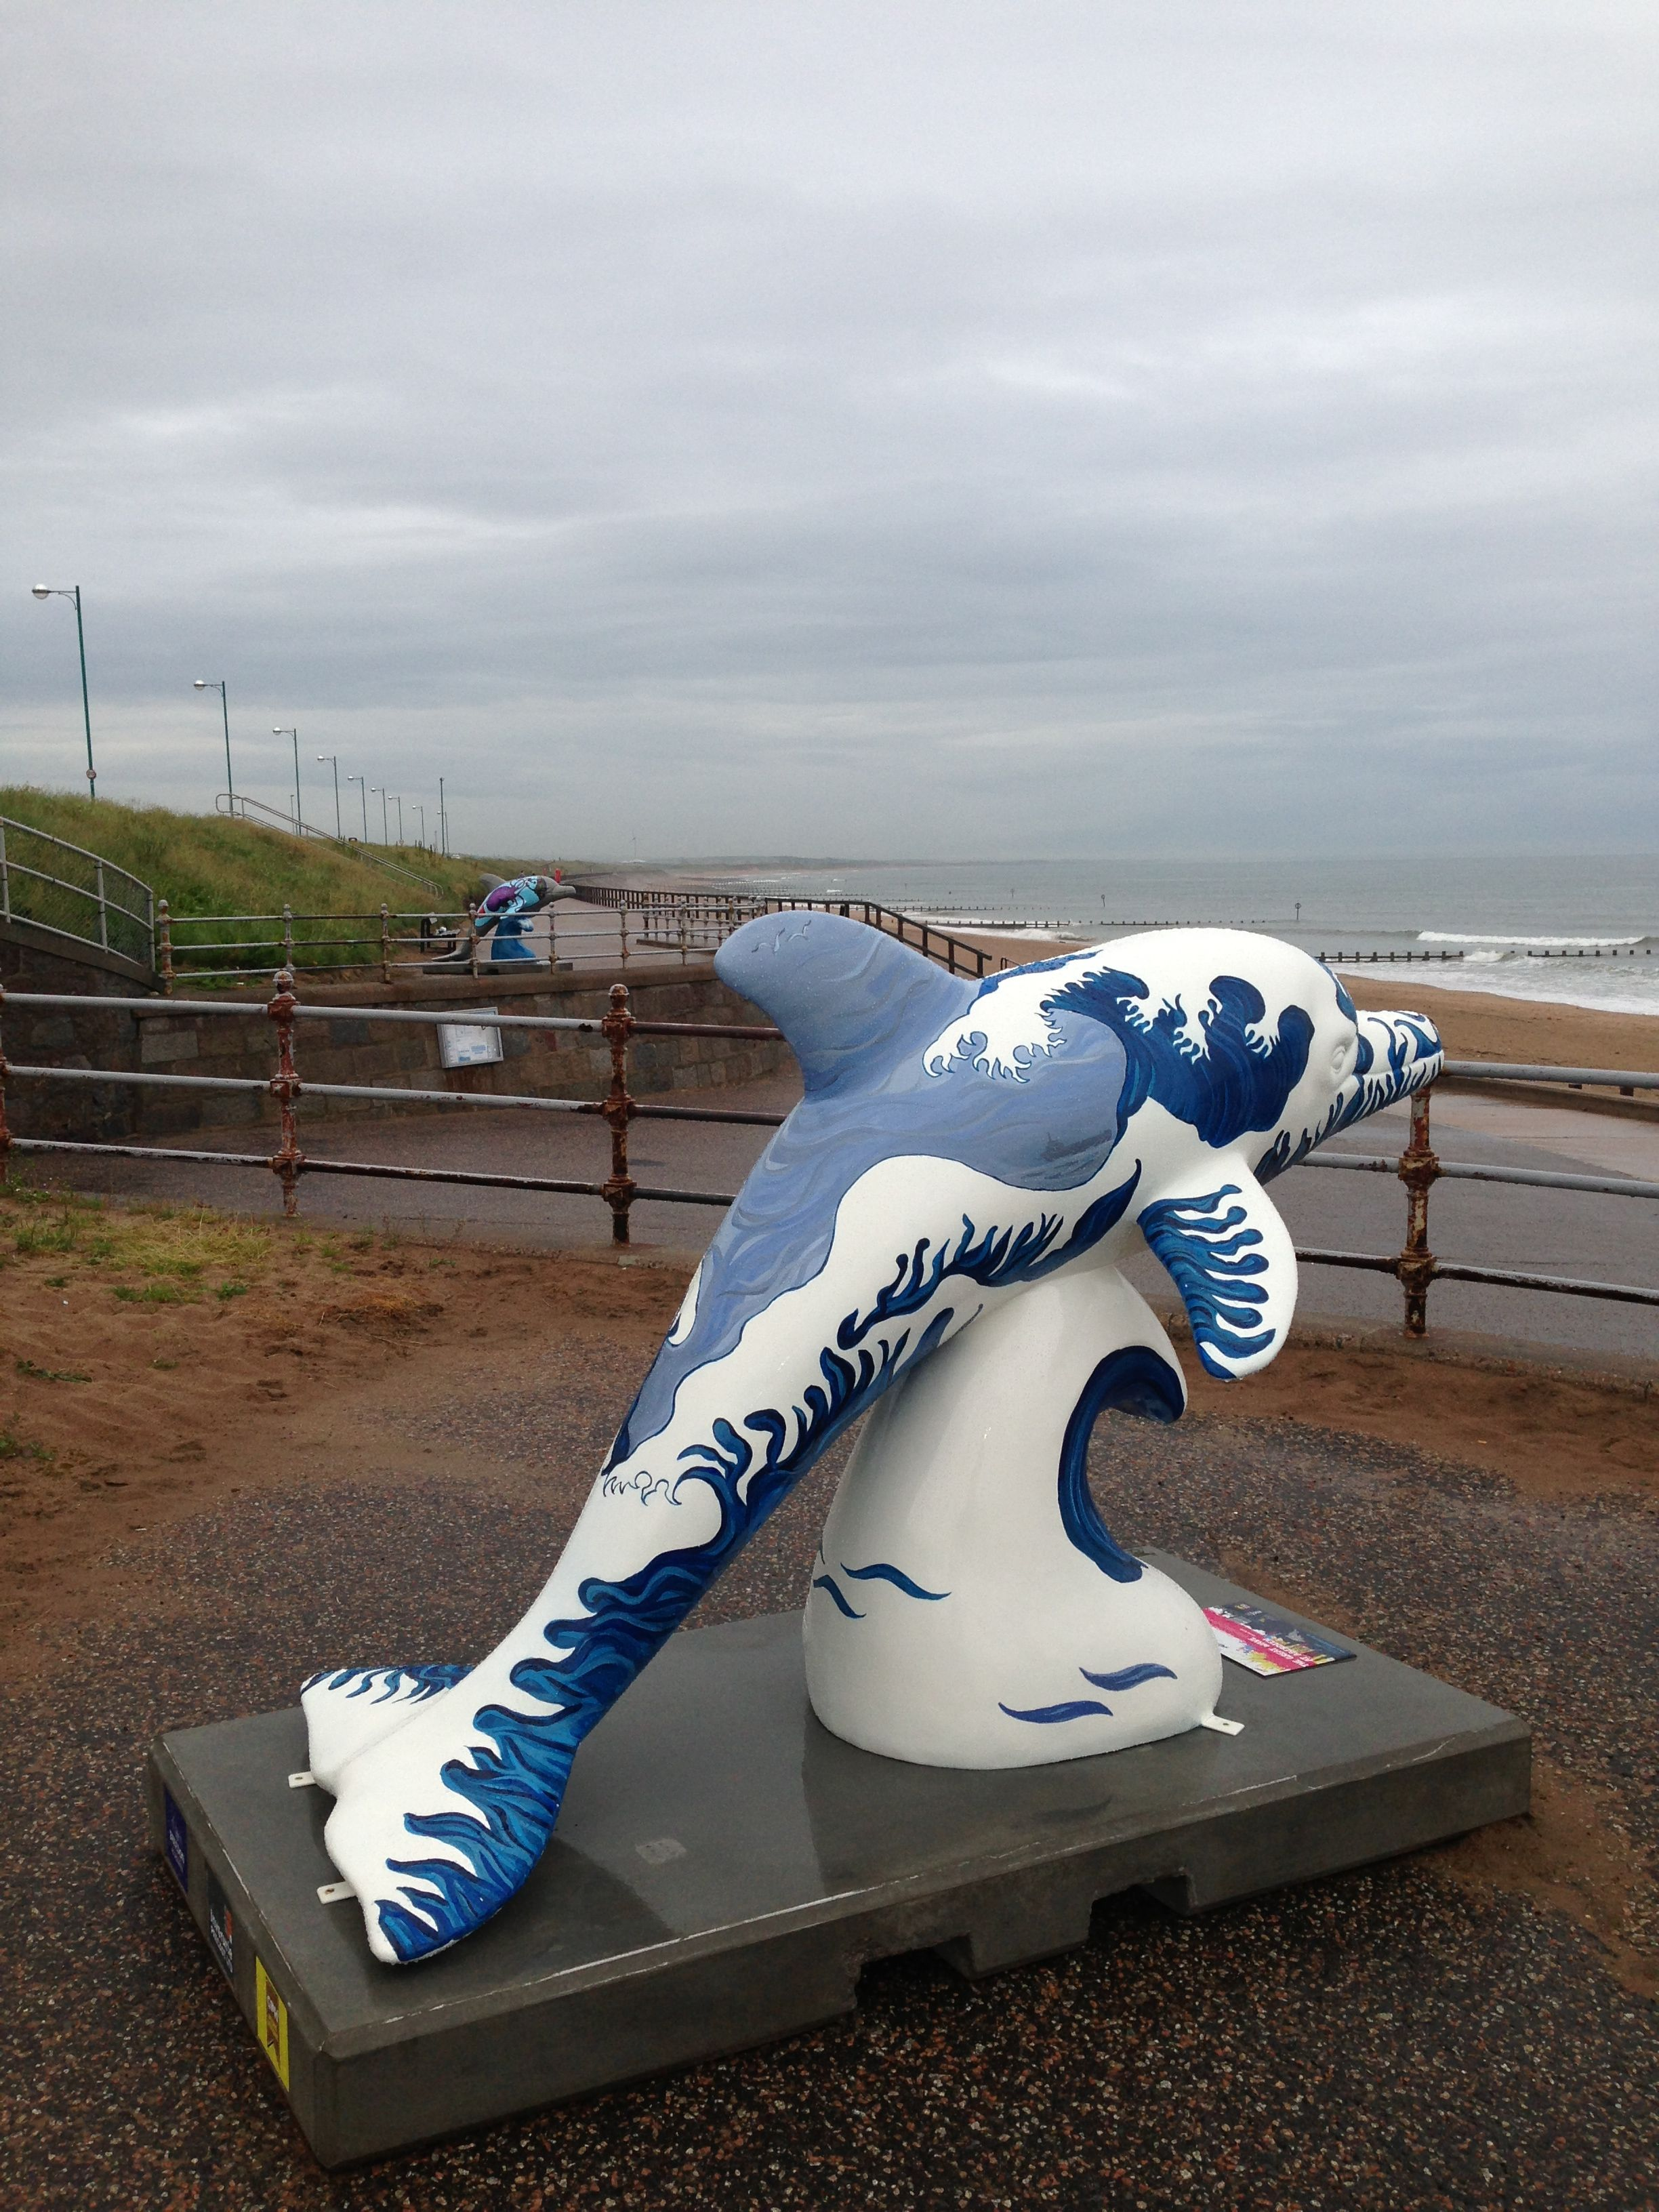 #wilddolphins One of many the wild dolphin sculptures to be found around Aberdeen.